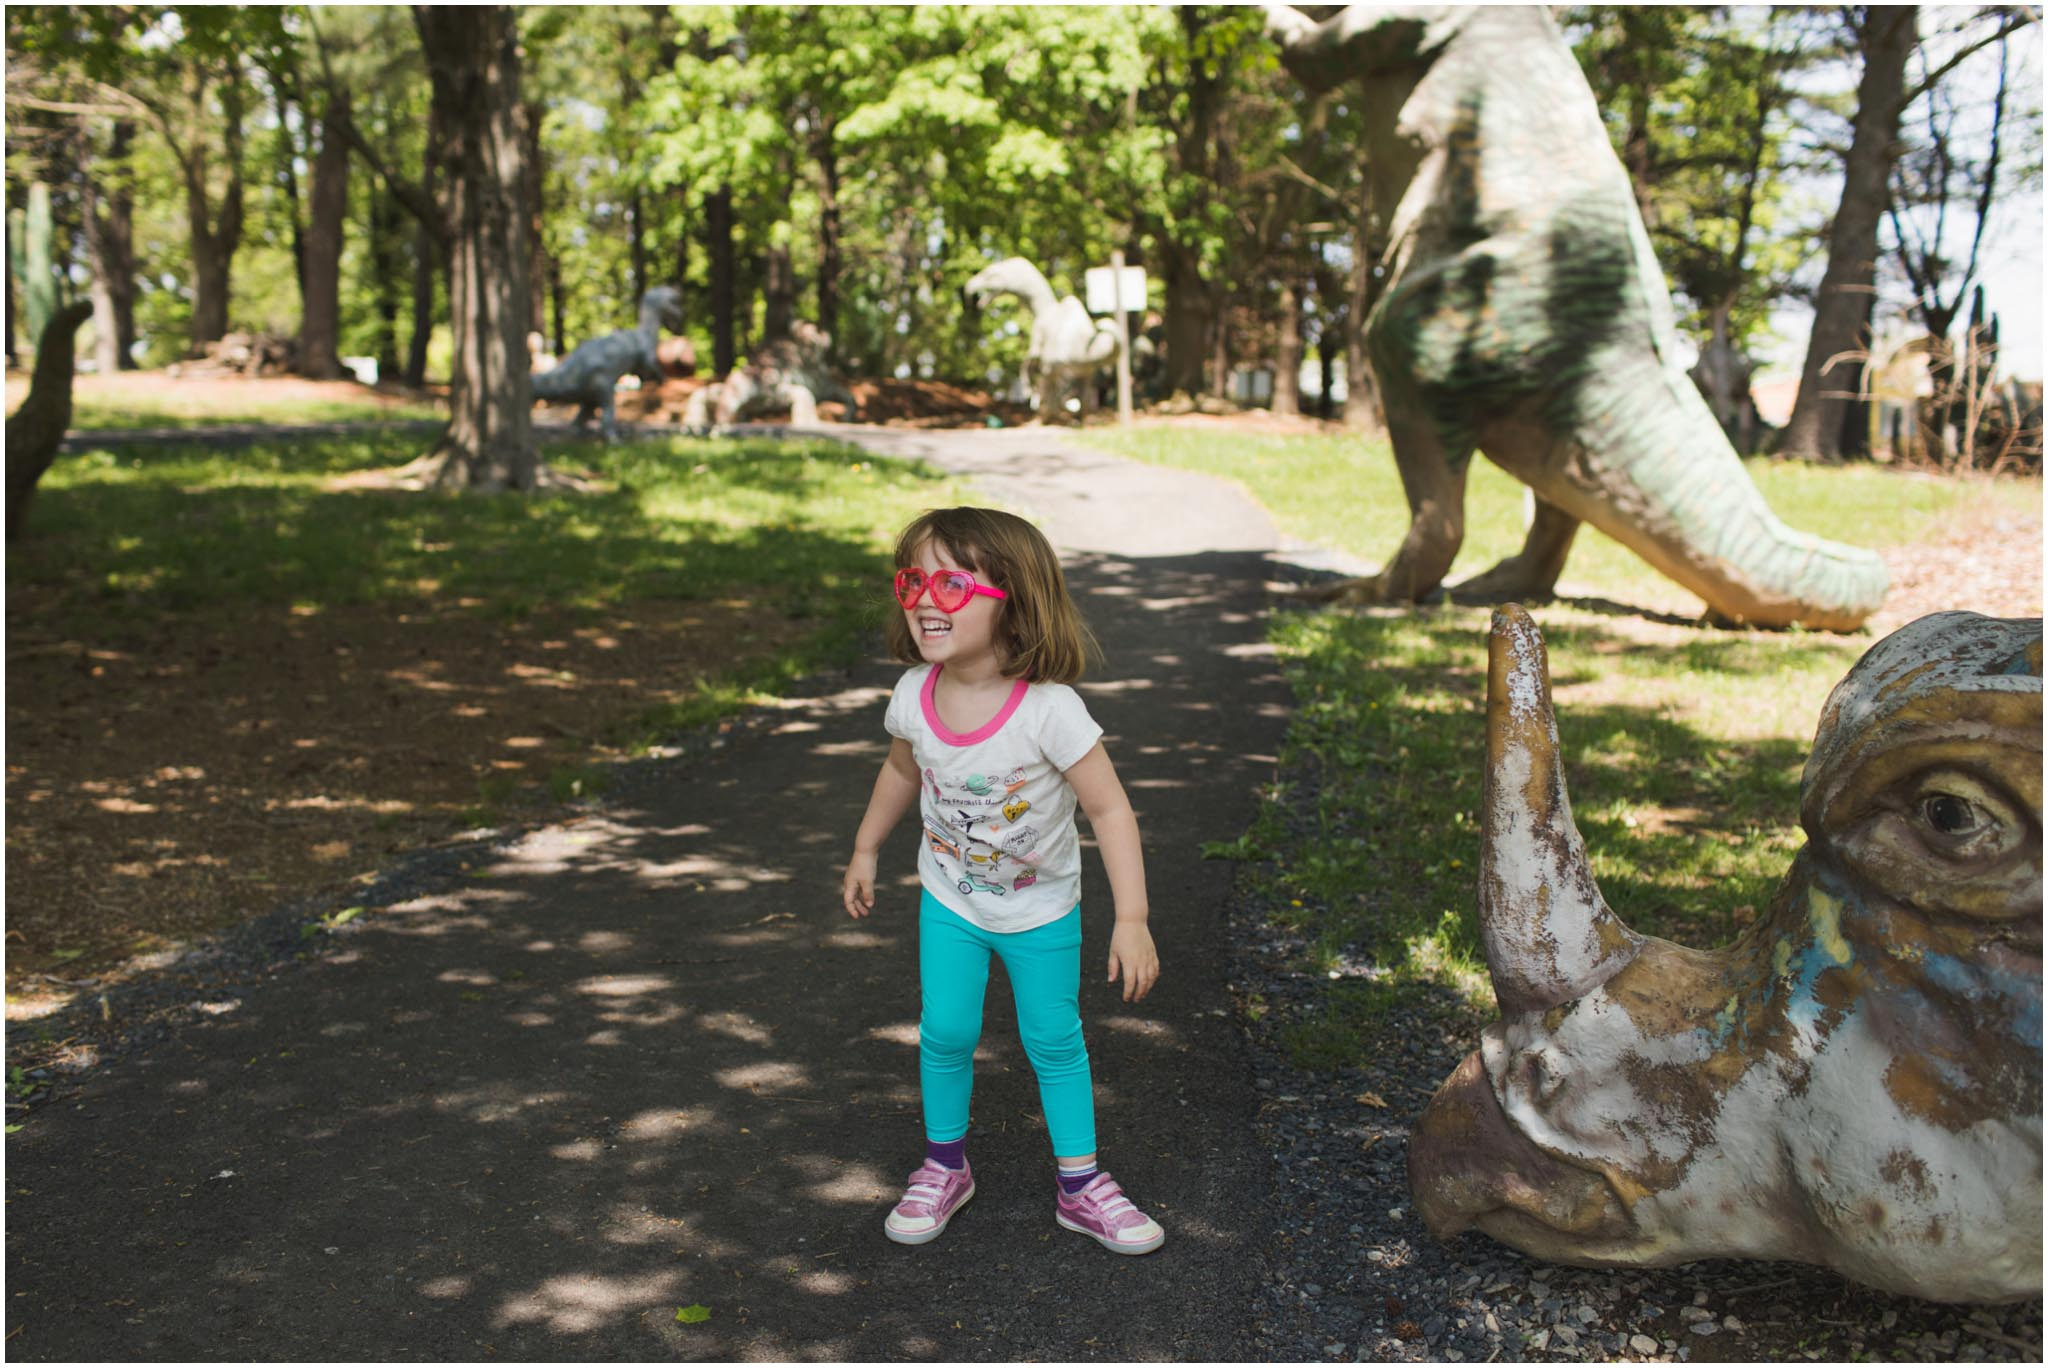 Dinosaur Land, Virginia, road trip